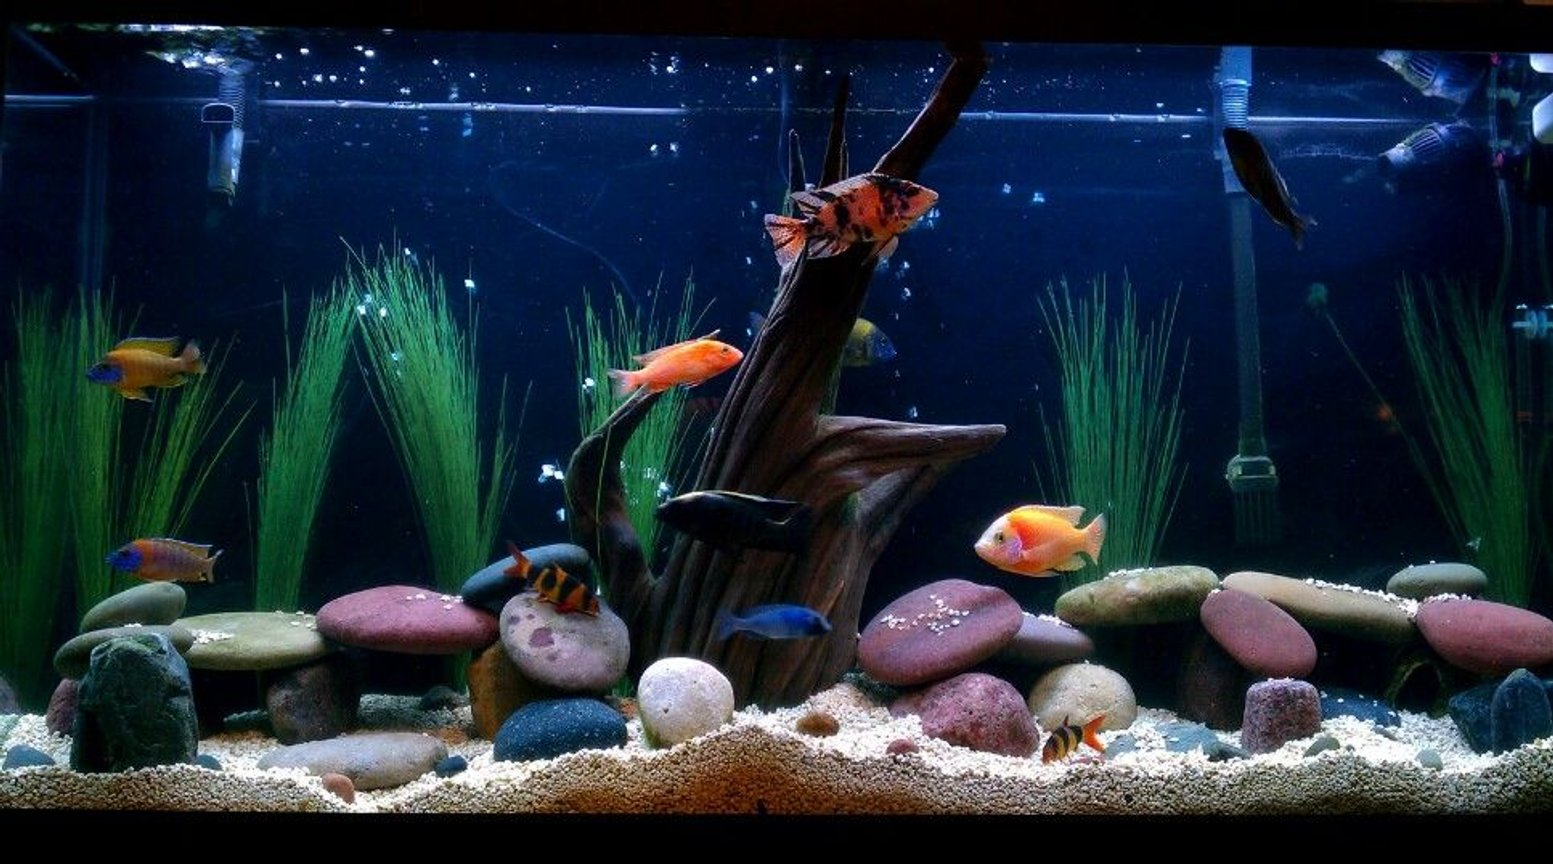 60 gallons freshwater fish tank (mostly fish and non-living decorations) - Lets see some good ratings! Come on! Haha